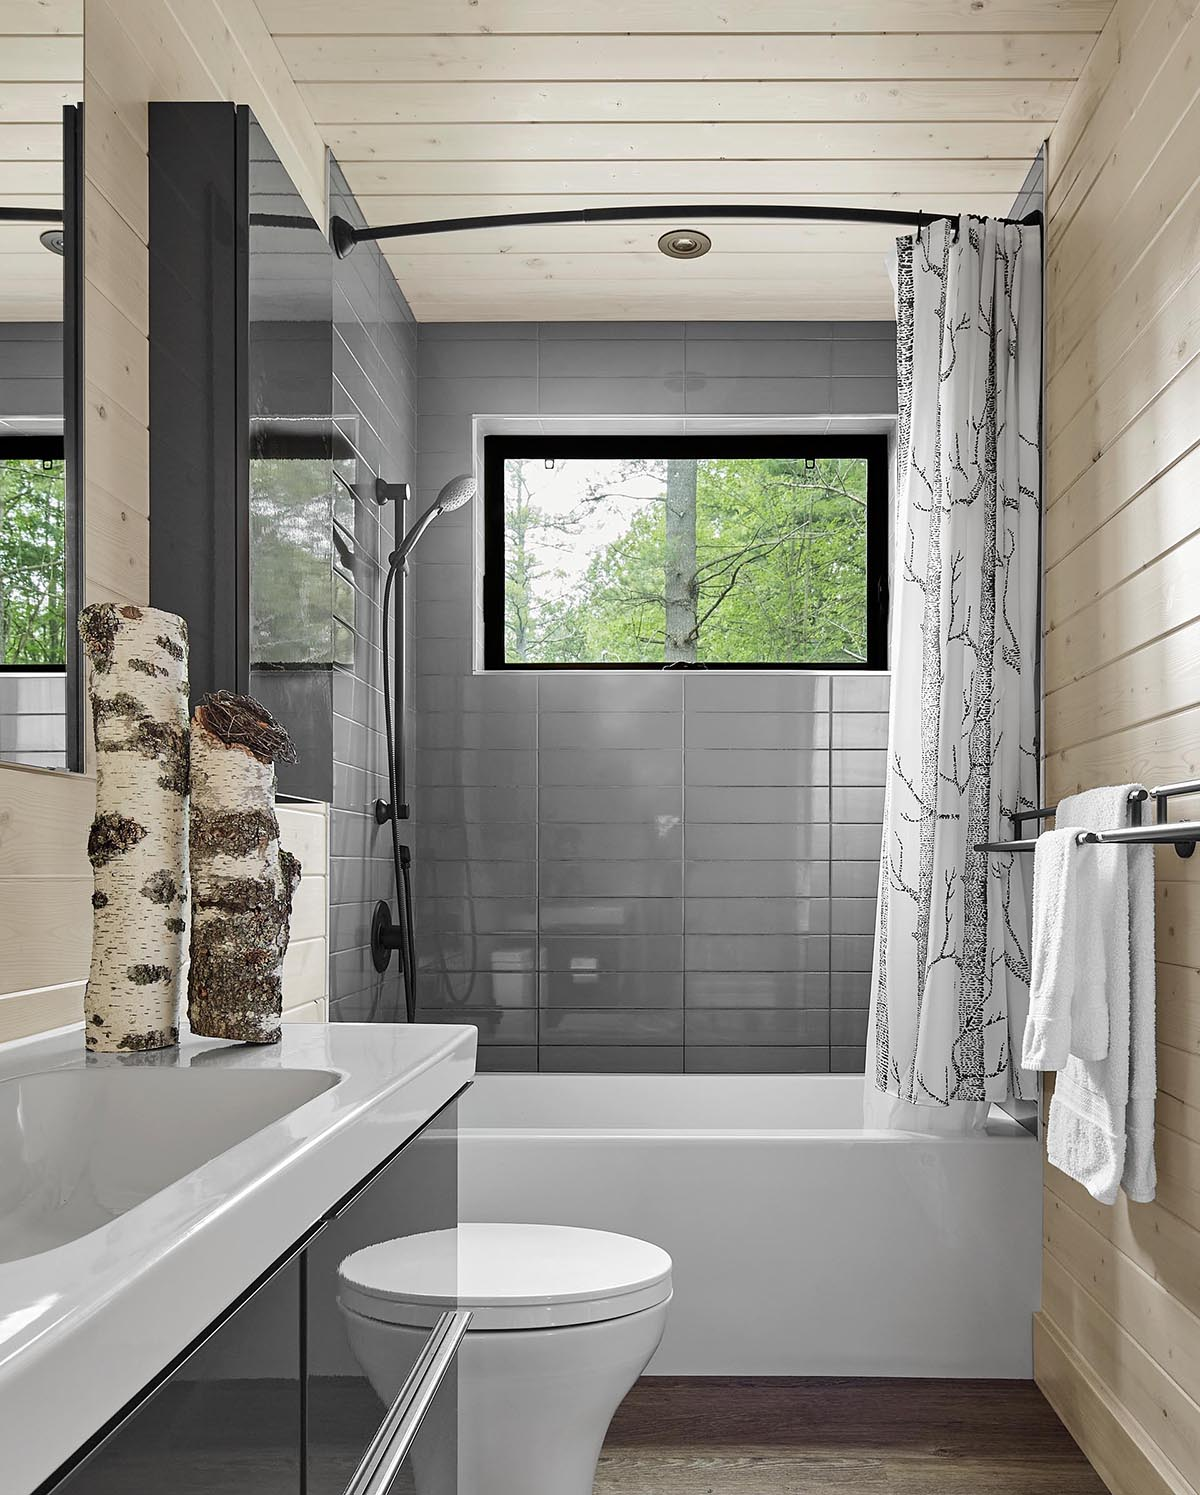 A modern gray and wood bathroom with black and white accents.